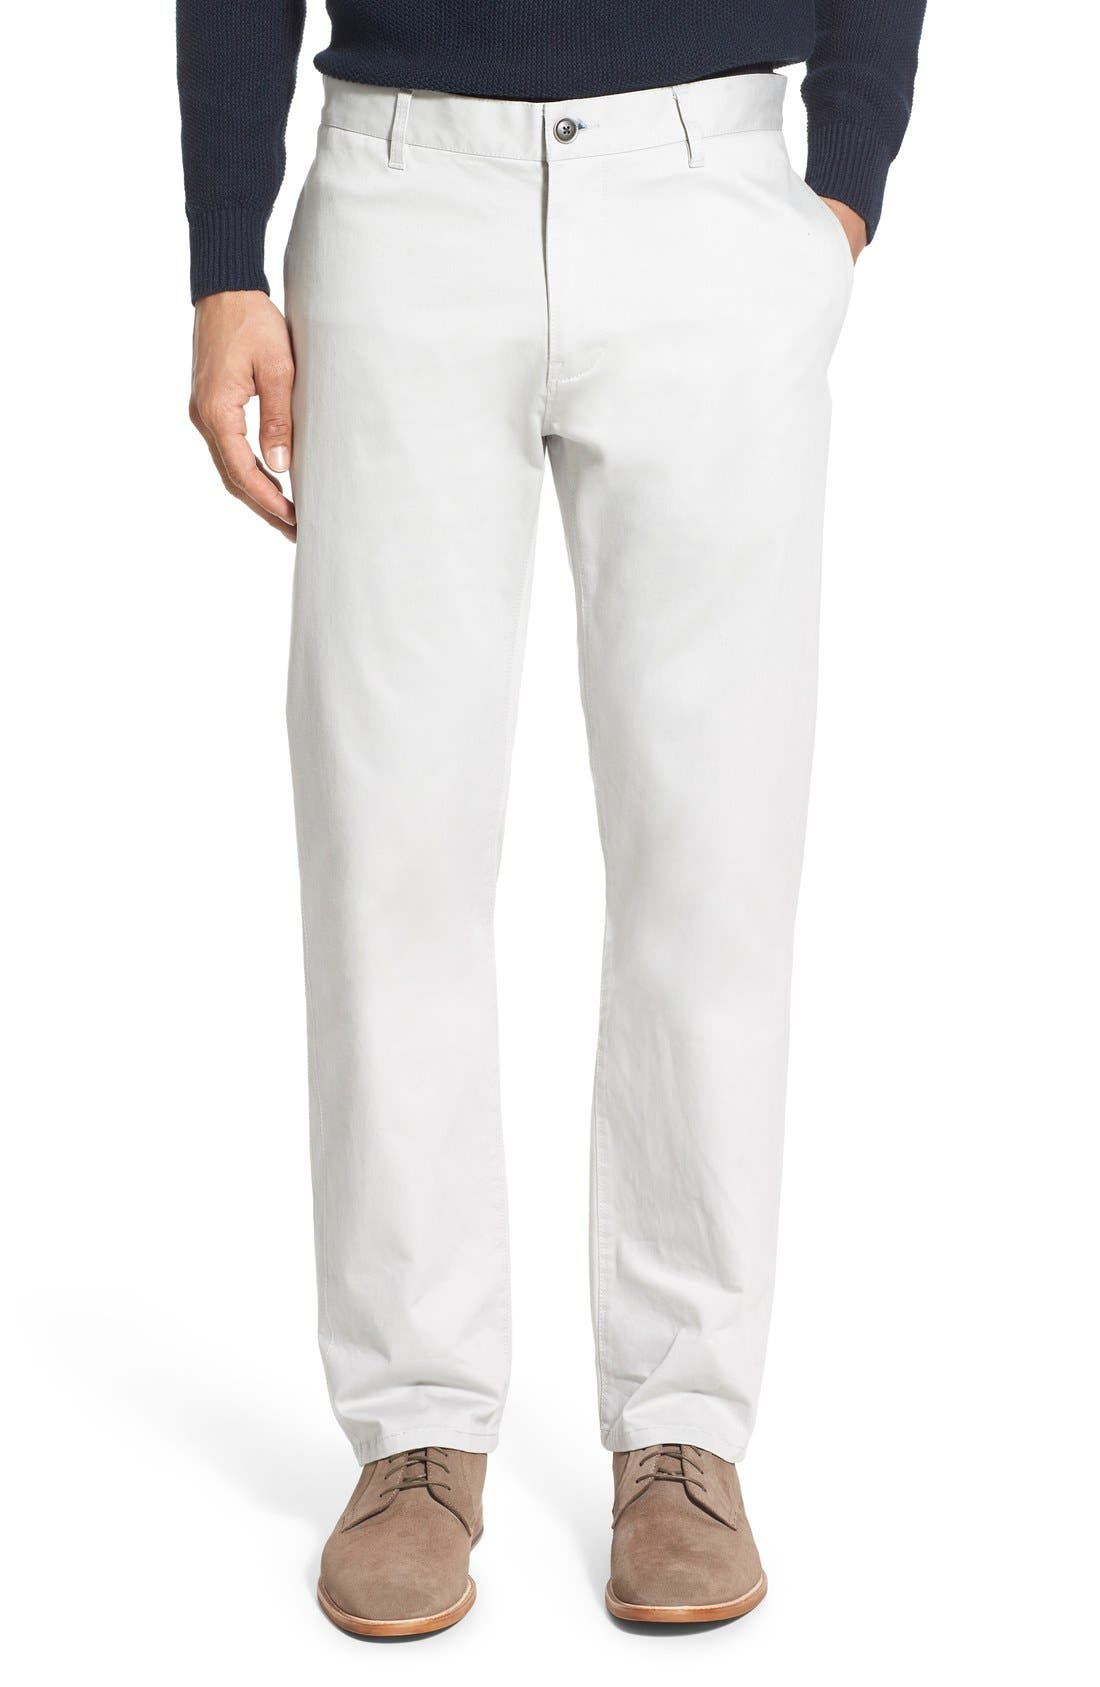 W.R.K 'Beckett' Slim Fit Pants